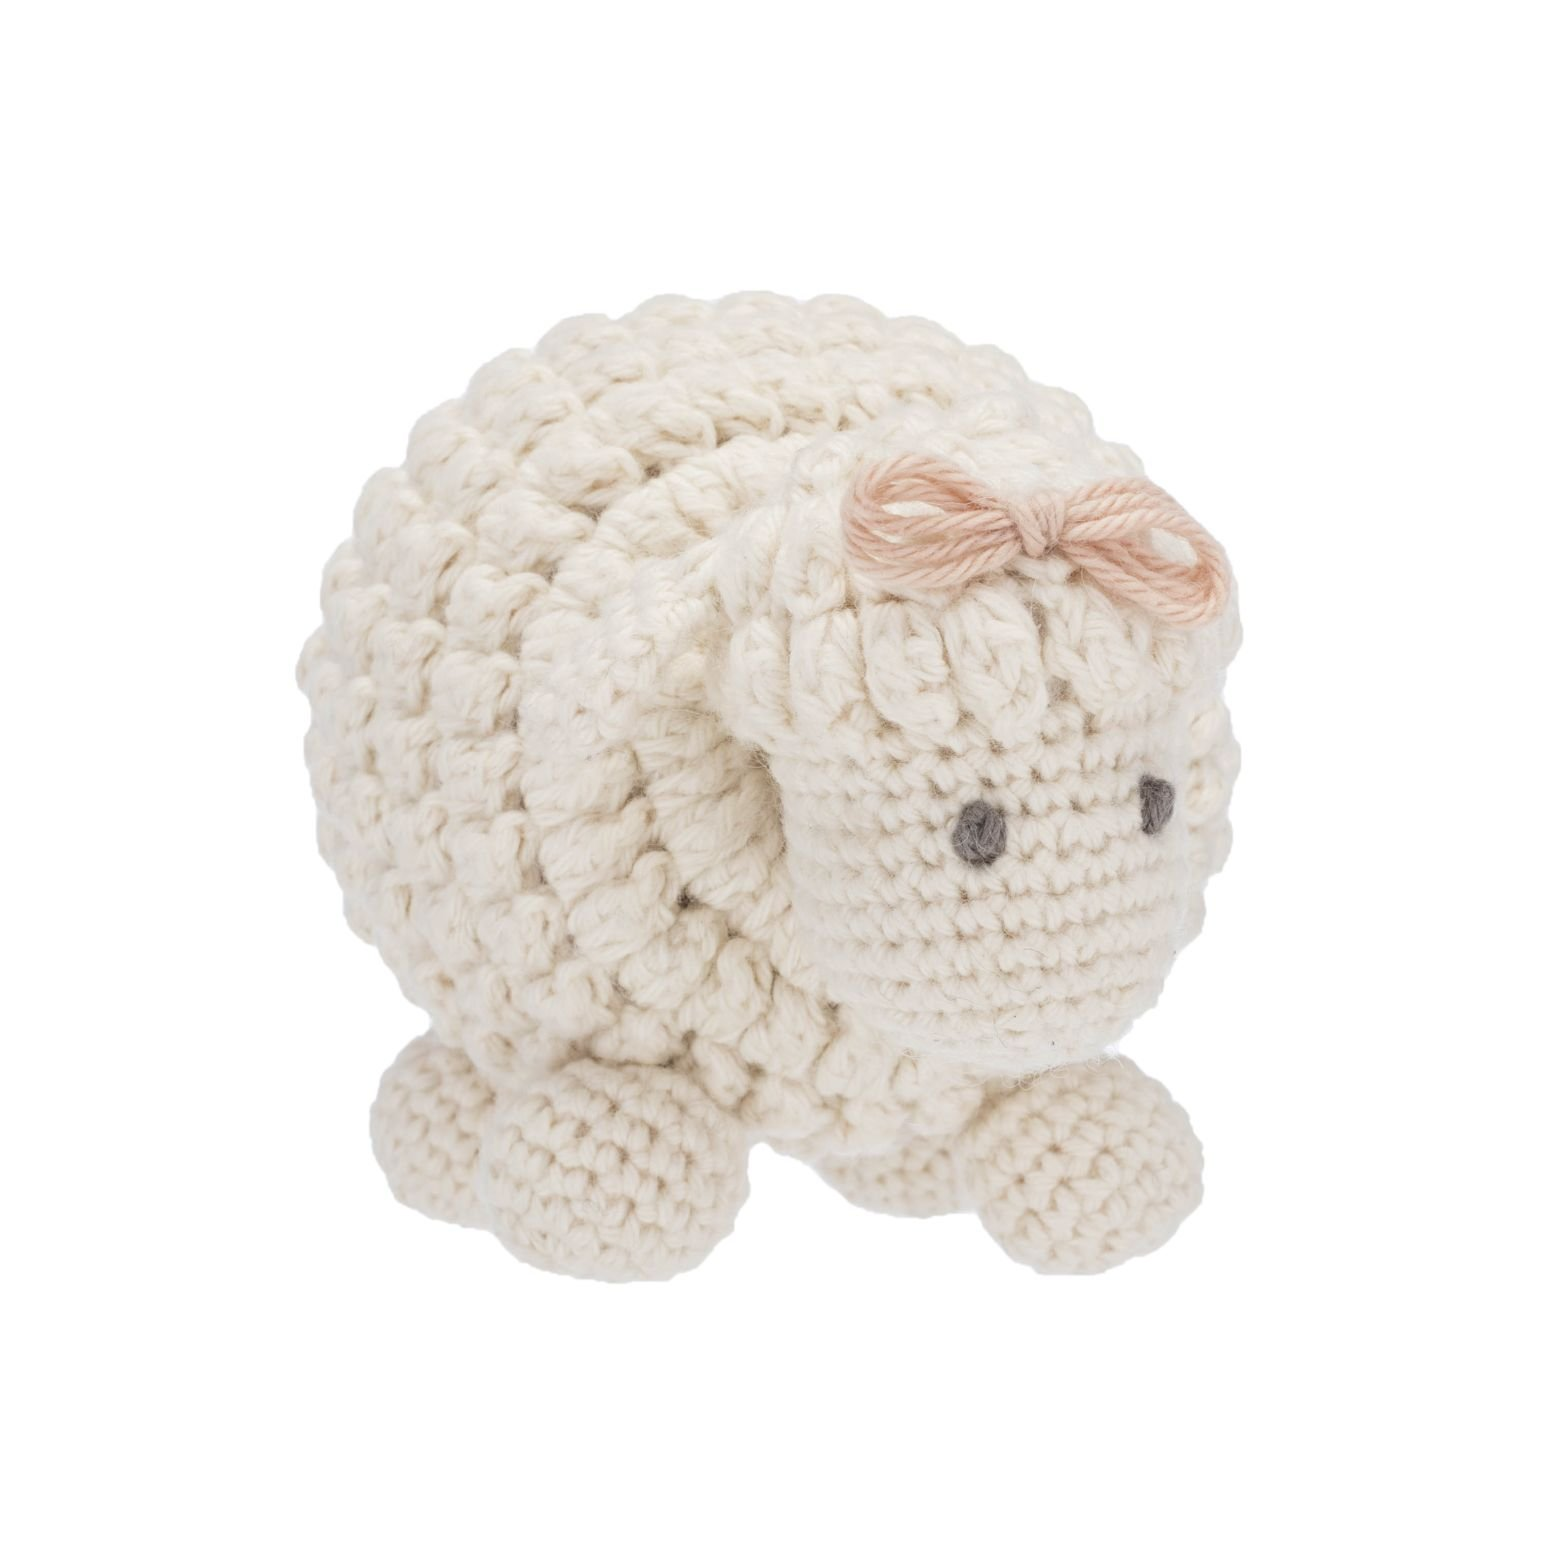 Darzzi Sheep Rattle Toy 100% Organic Cotton - Natural